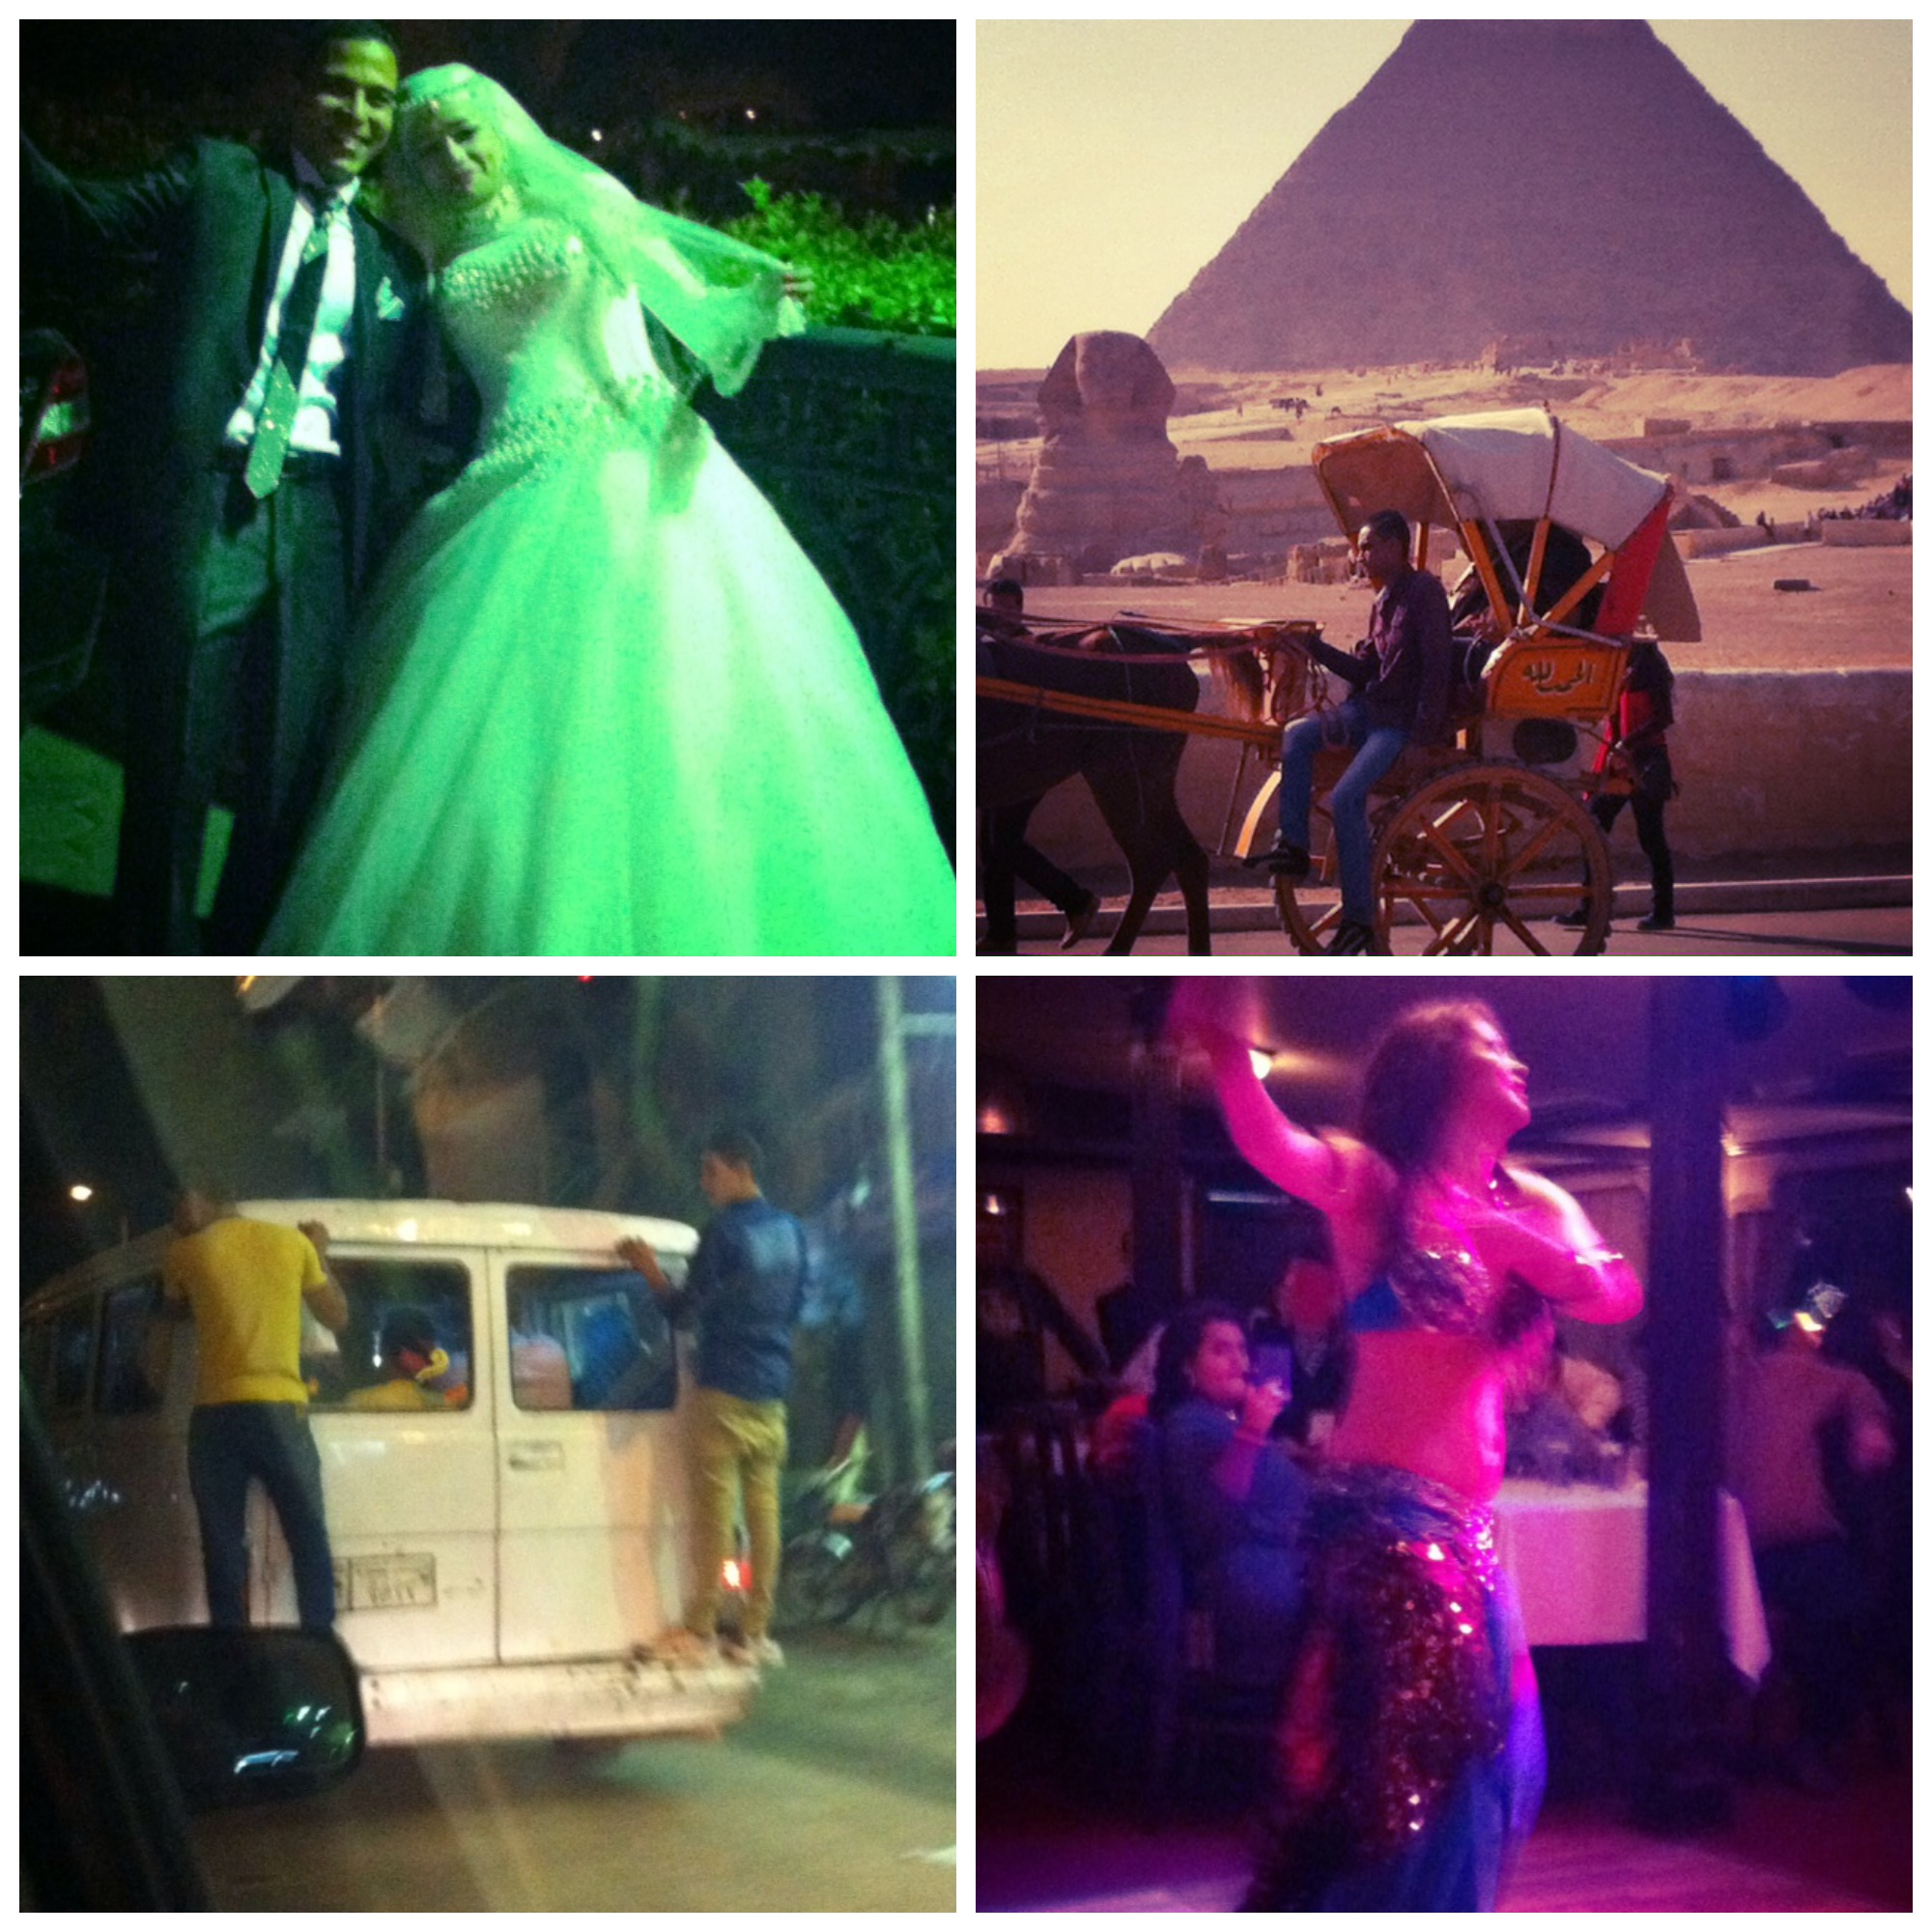 Clockwise from top left: an Egyptian wedding; a man rides his horse and carriage past a scene that's been part of the landscape for thousands of years; a belly dancer mesmerises her audience on a Nile river cruise; and standing room only on the bus.